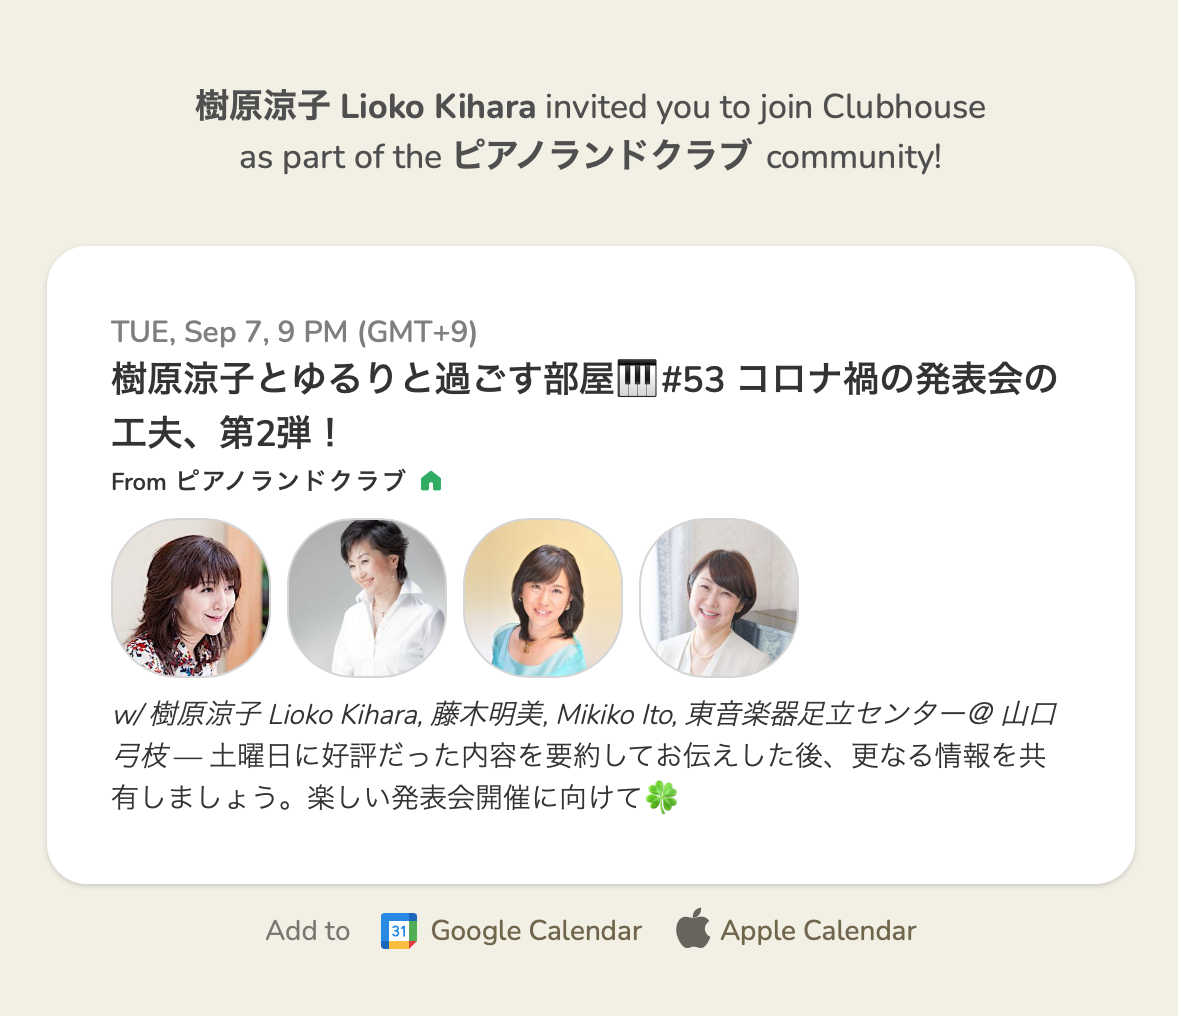 Clubhouse 樹原涼子とゆるりと過ごす部屋 🎹#53 コロナ禍の発表会の工夫、第2弾!